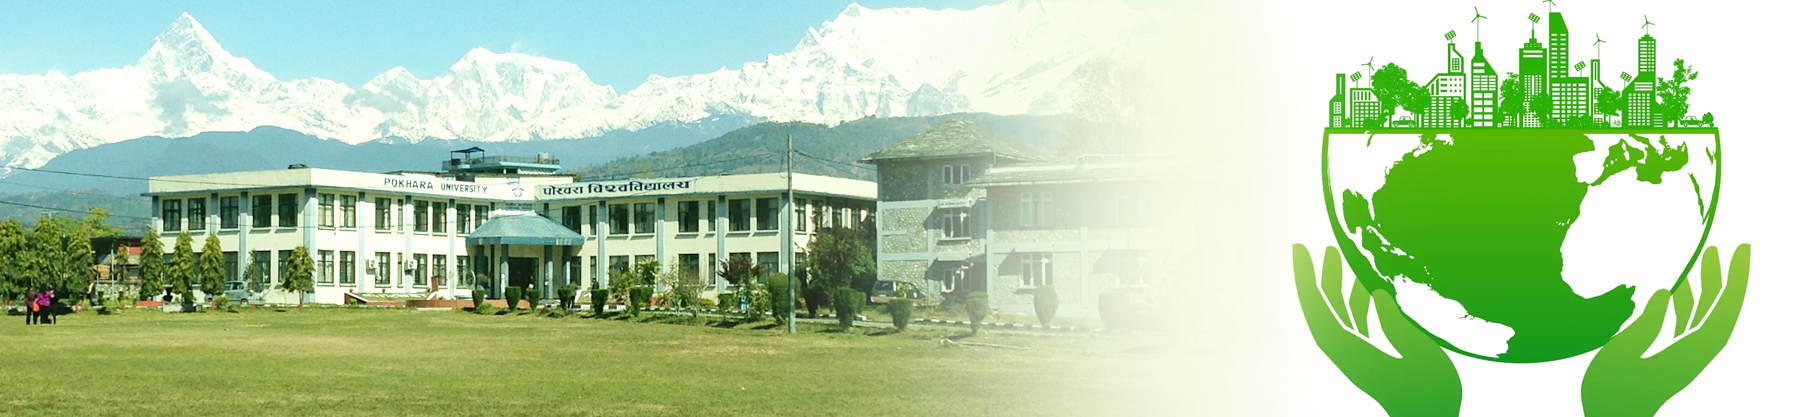 Pokhara University School of Development and Social Engineering